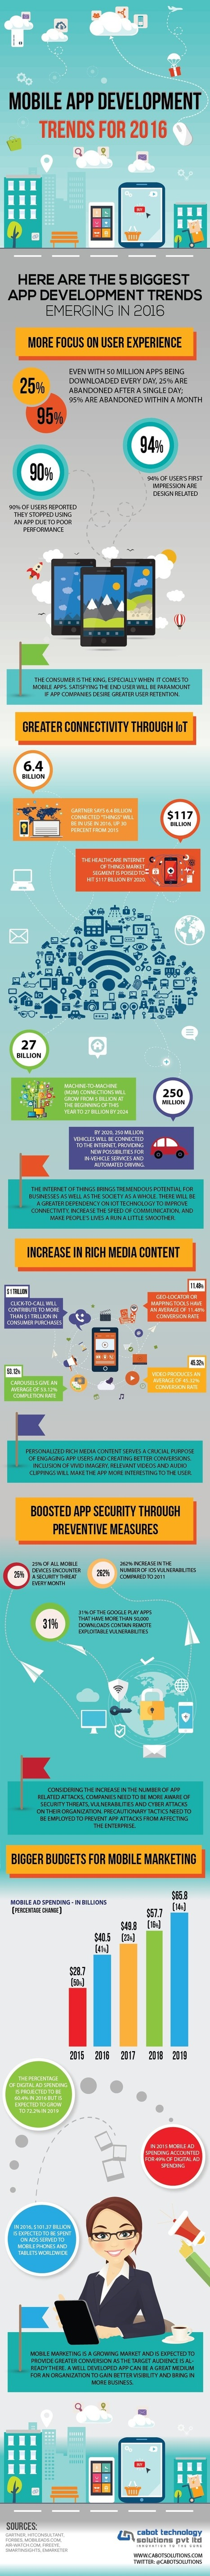 Mobile App Development Trend and Opportunities for 2016 | All Infographics | Scoop.it